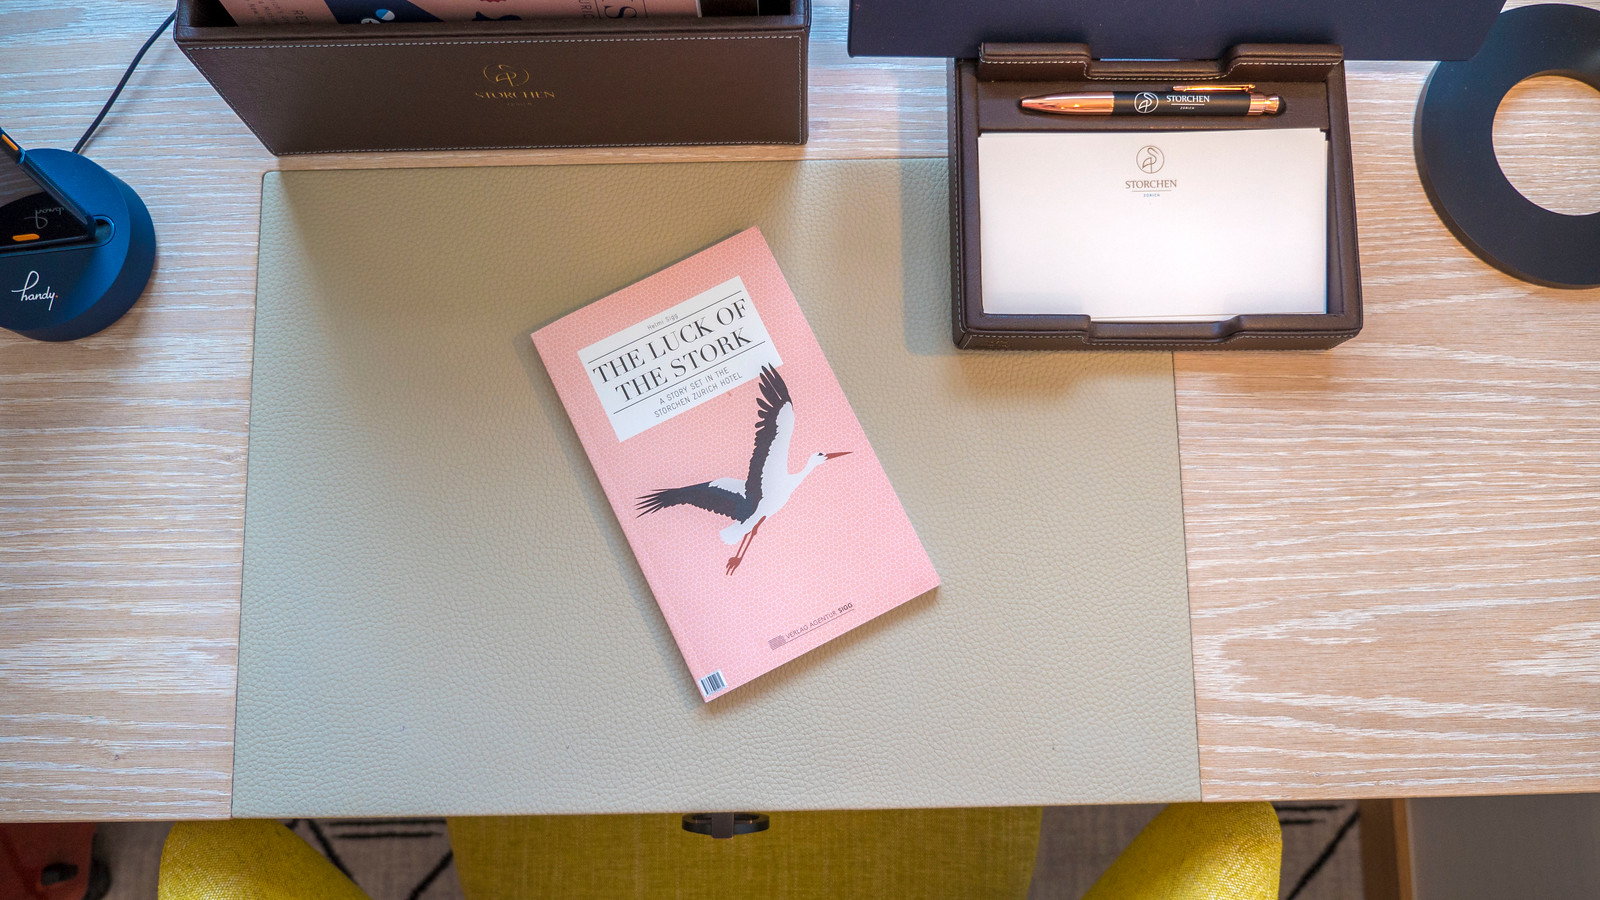 The Luck of the Stork, a novel featuring the Hotel Storchen Zurich.